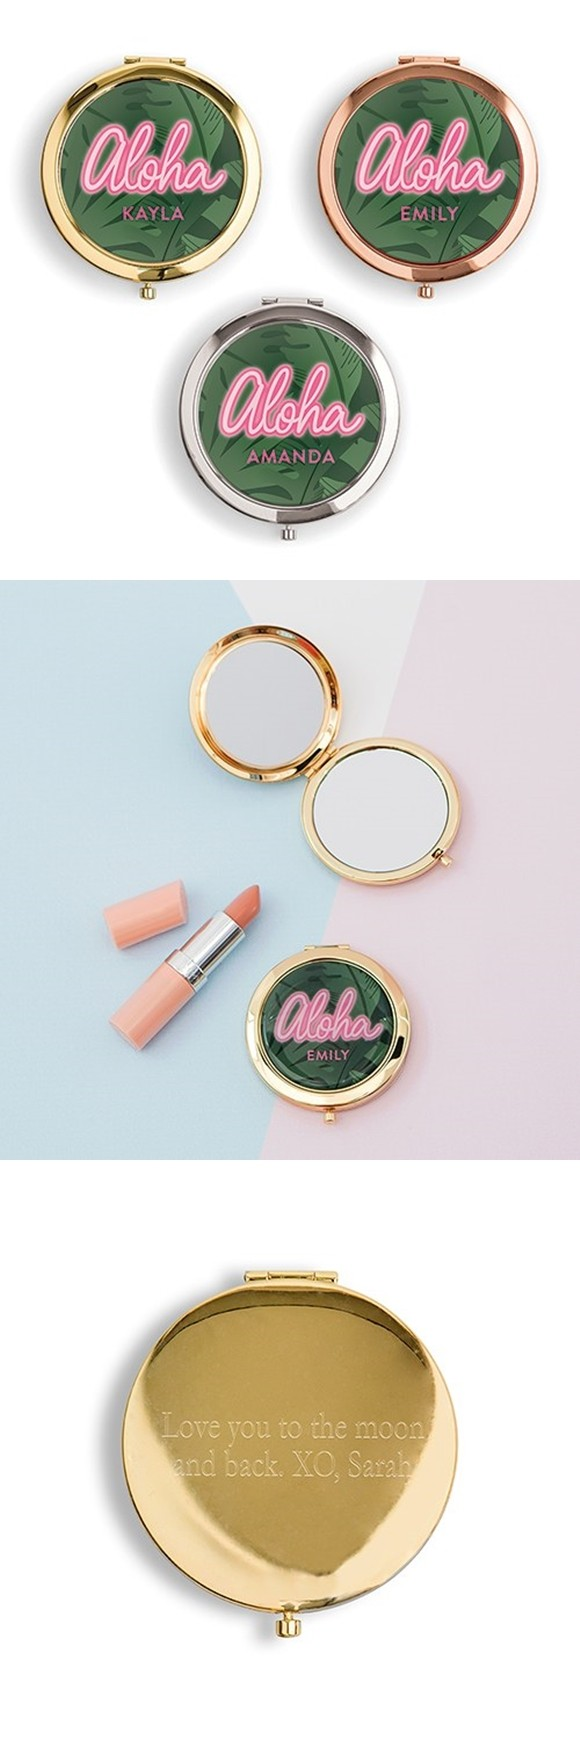 Personalized Designer Compact Mirror with 'Aloha' Summer Vibes Print